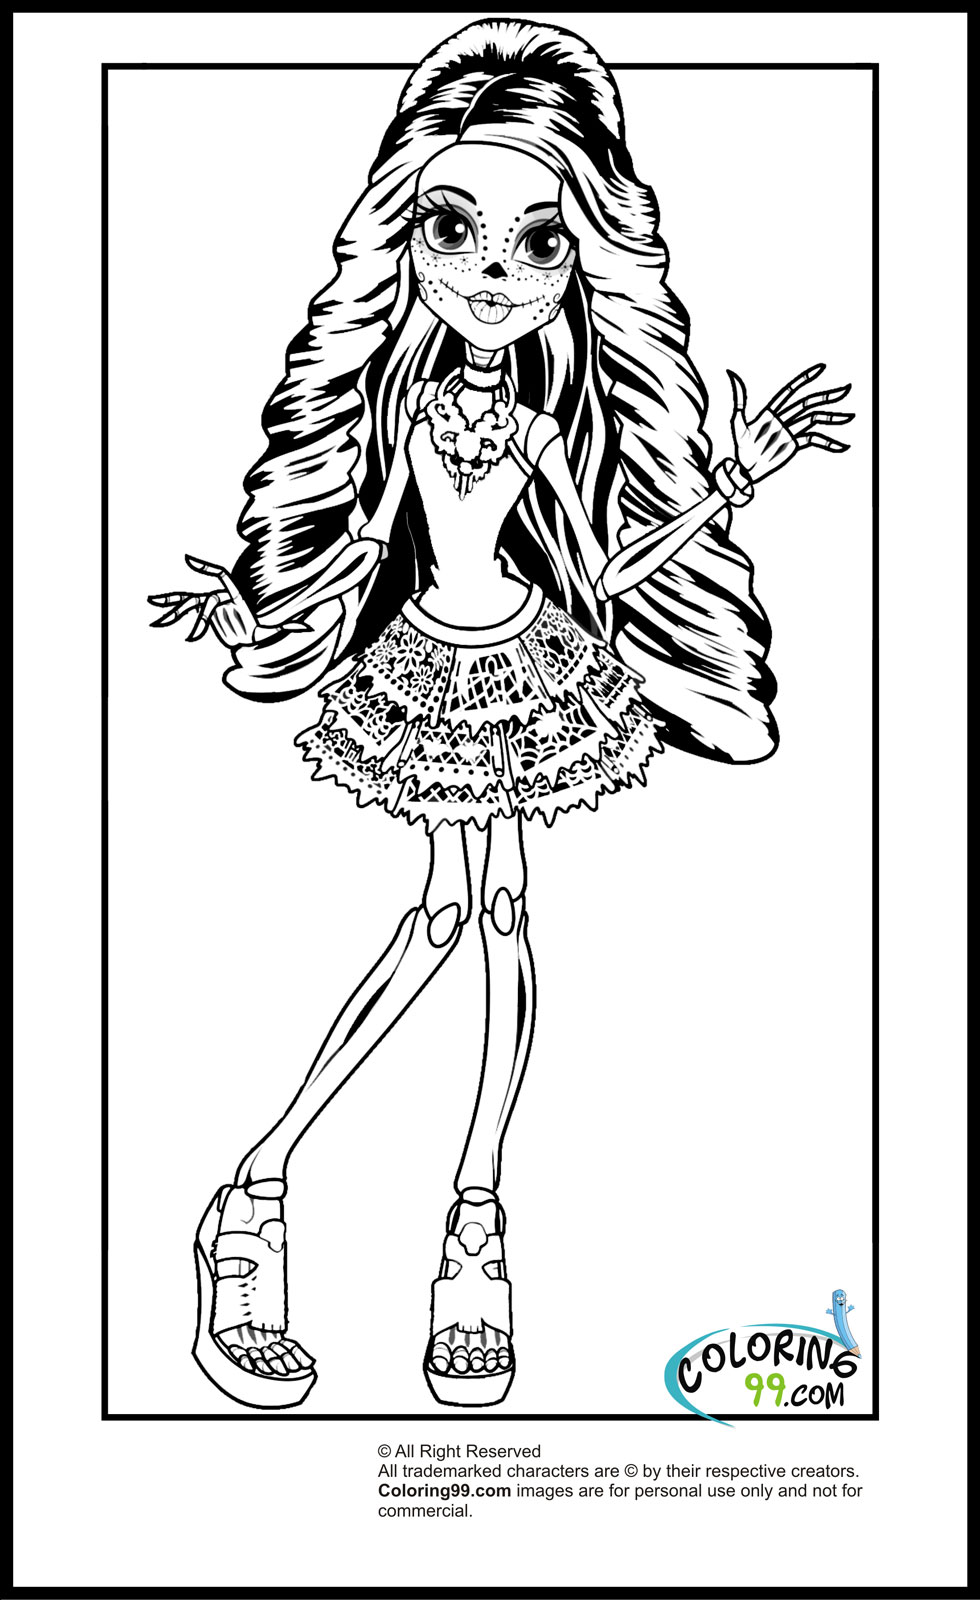 Monster High Travel Scaris Coloring Pages | Minister Coloring